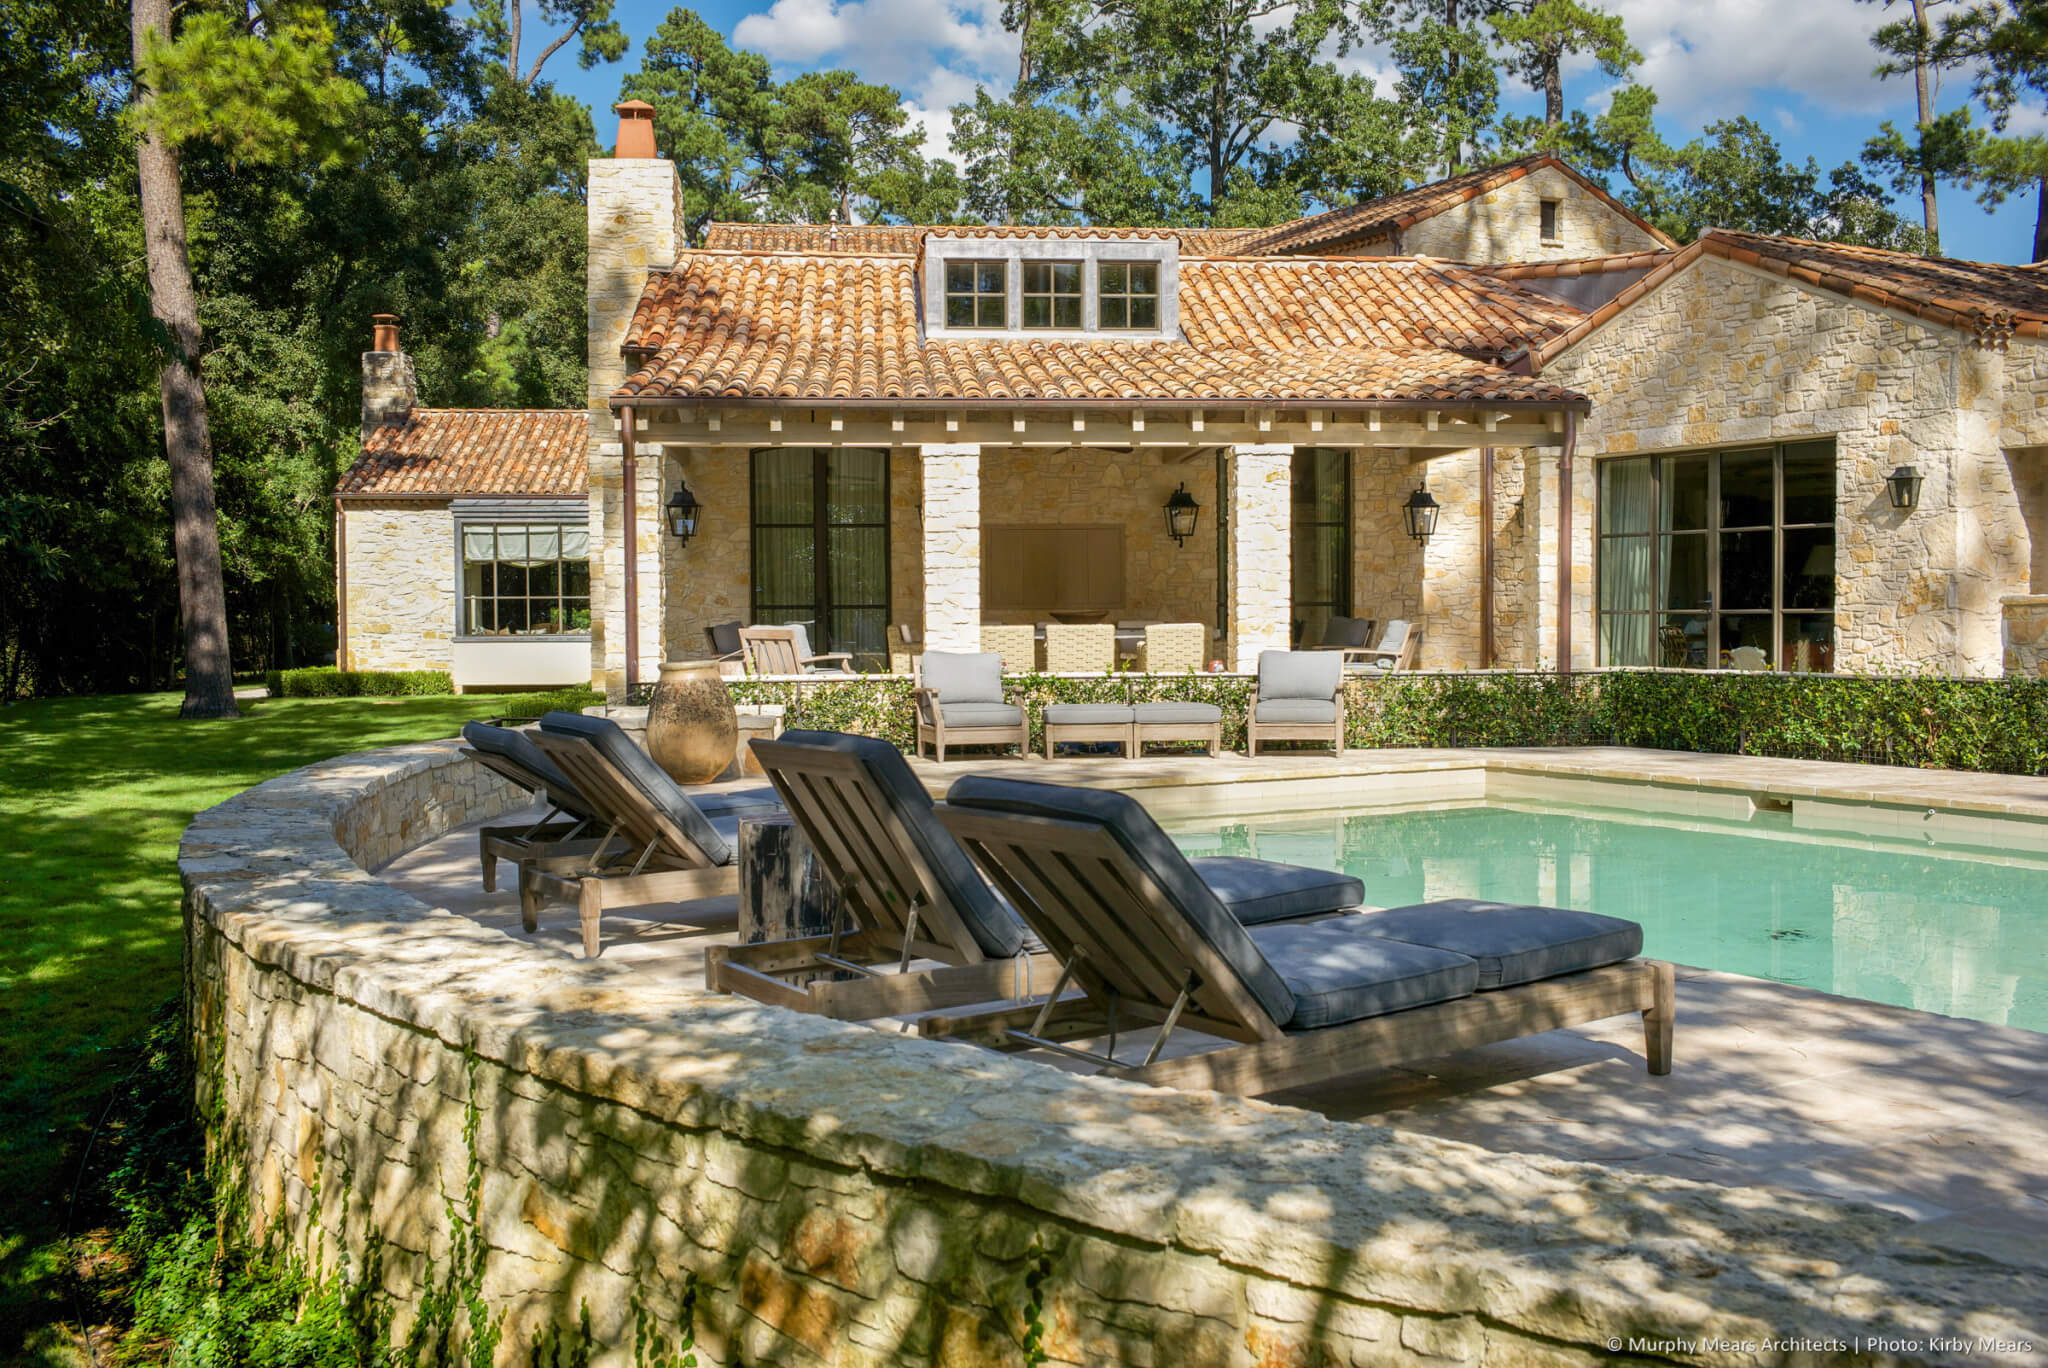 Stone pool terrace, with covered porch, family room and kitchen beneath the one-story clay-tile roofs beyond.